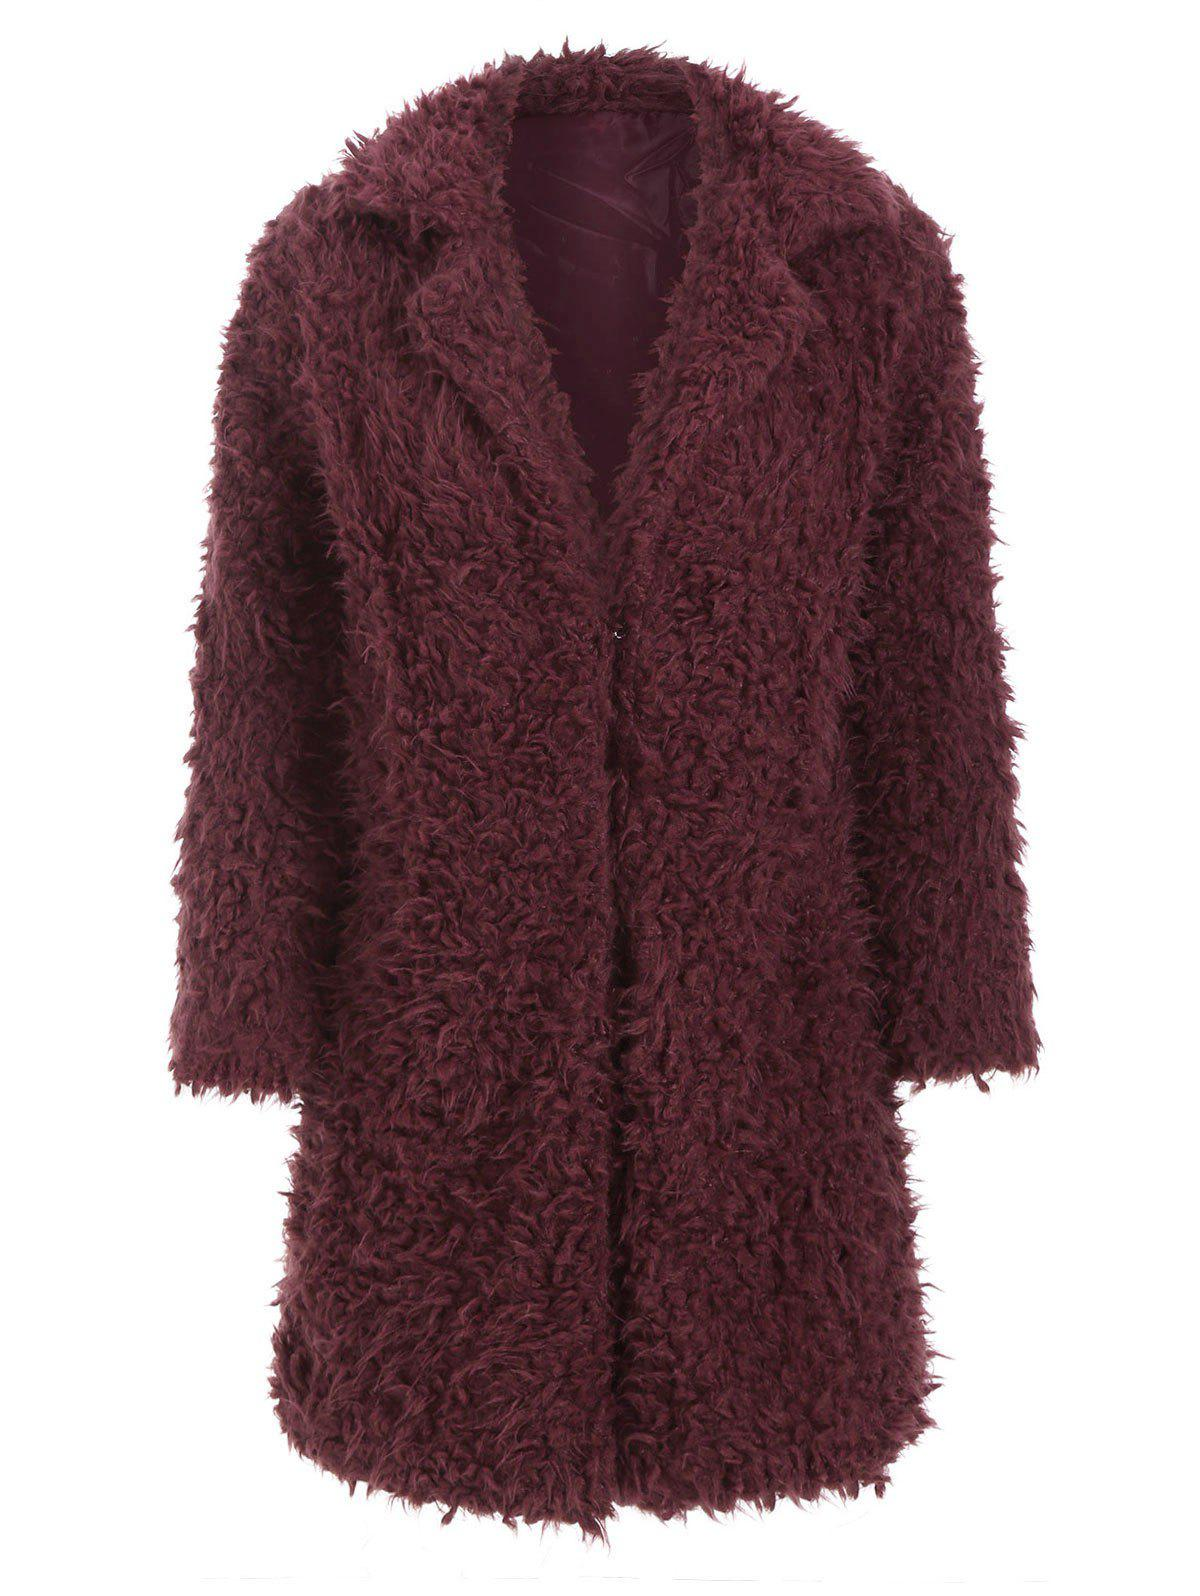 Hook-and-eye Faux Shearling Coat - RED WINE M